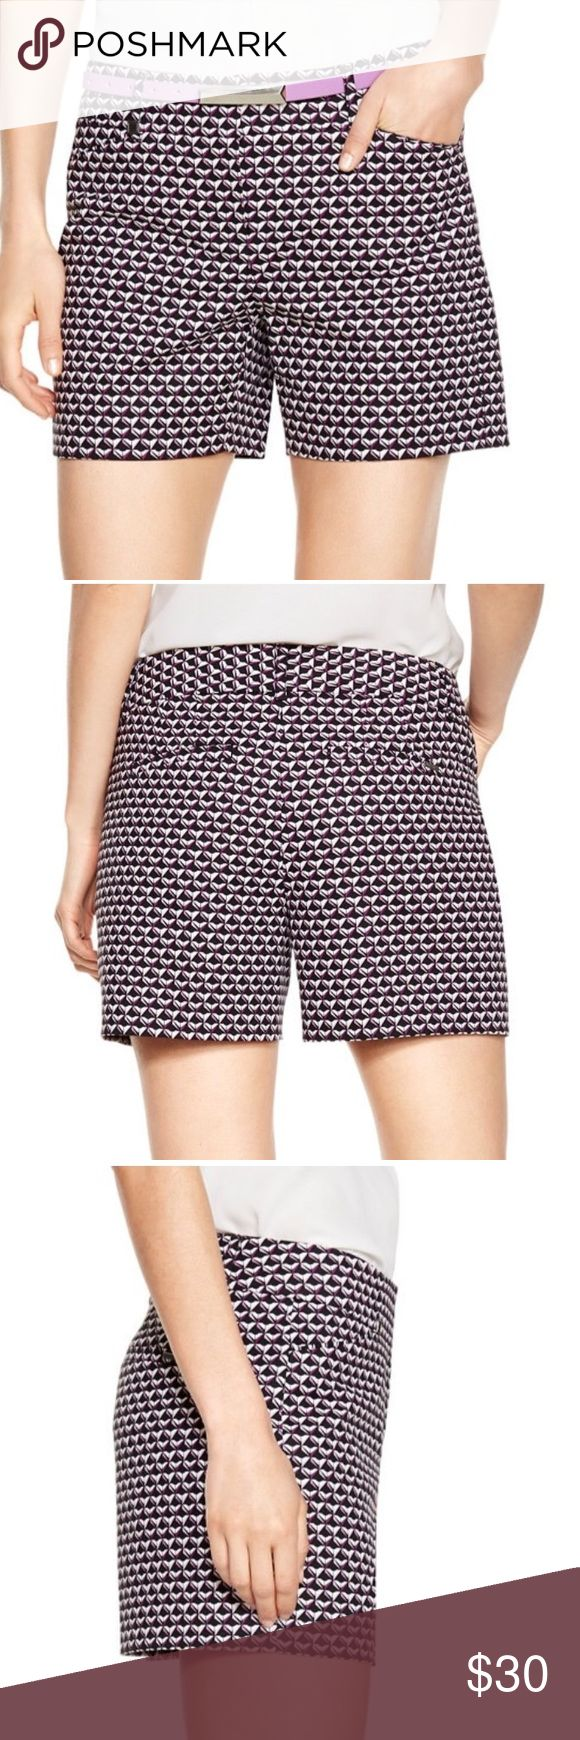 "WHBM Geometric Printed Shorts NWOT! White House Black Market beautifully crafted sleek stretch cotton, clean cut shorts in a black, white and purple geometric print with the perfect in-between length. Sits below the waist. Hidden double hook and bar closure with interior button and zip fly. Slant front pockets and back welt pockets. 98% cotton, 2% Elastane. Brand new! Only tried it too big! No belt included. Can't return/ tag removed.  Approximately 5"" inseam. White House Black Market Shorts"